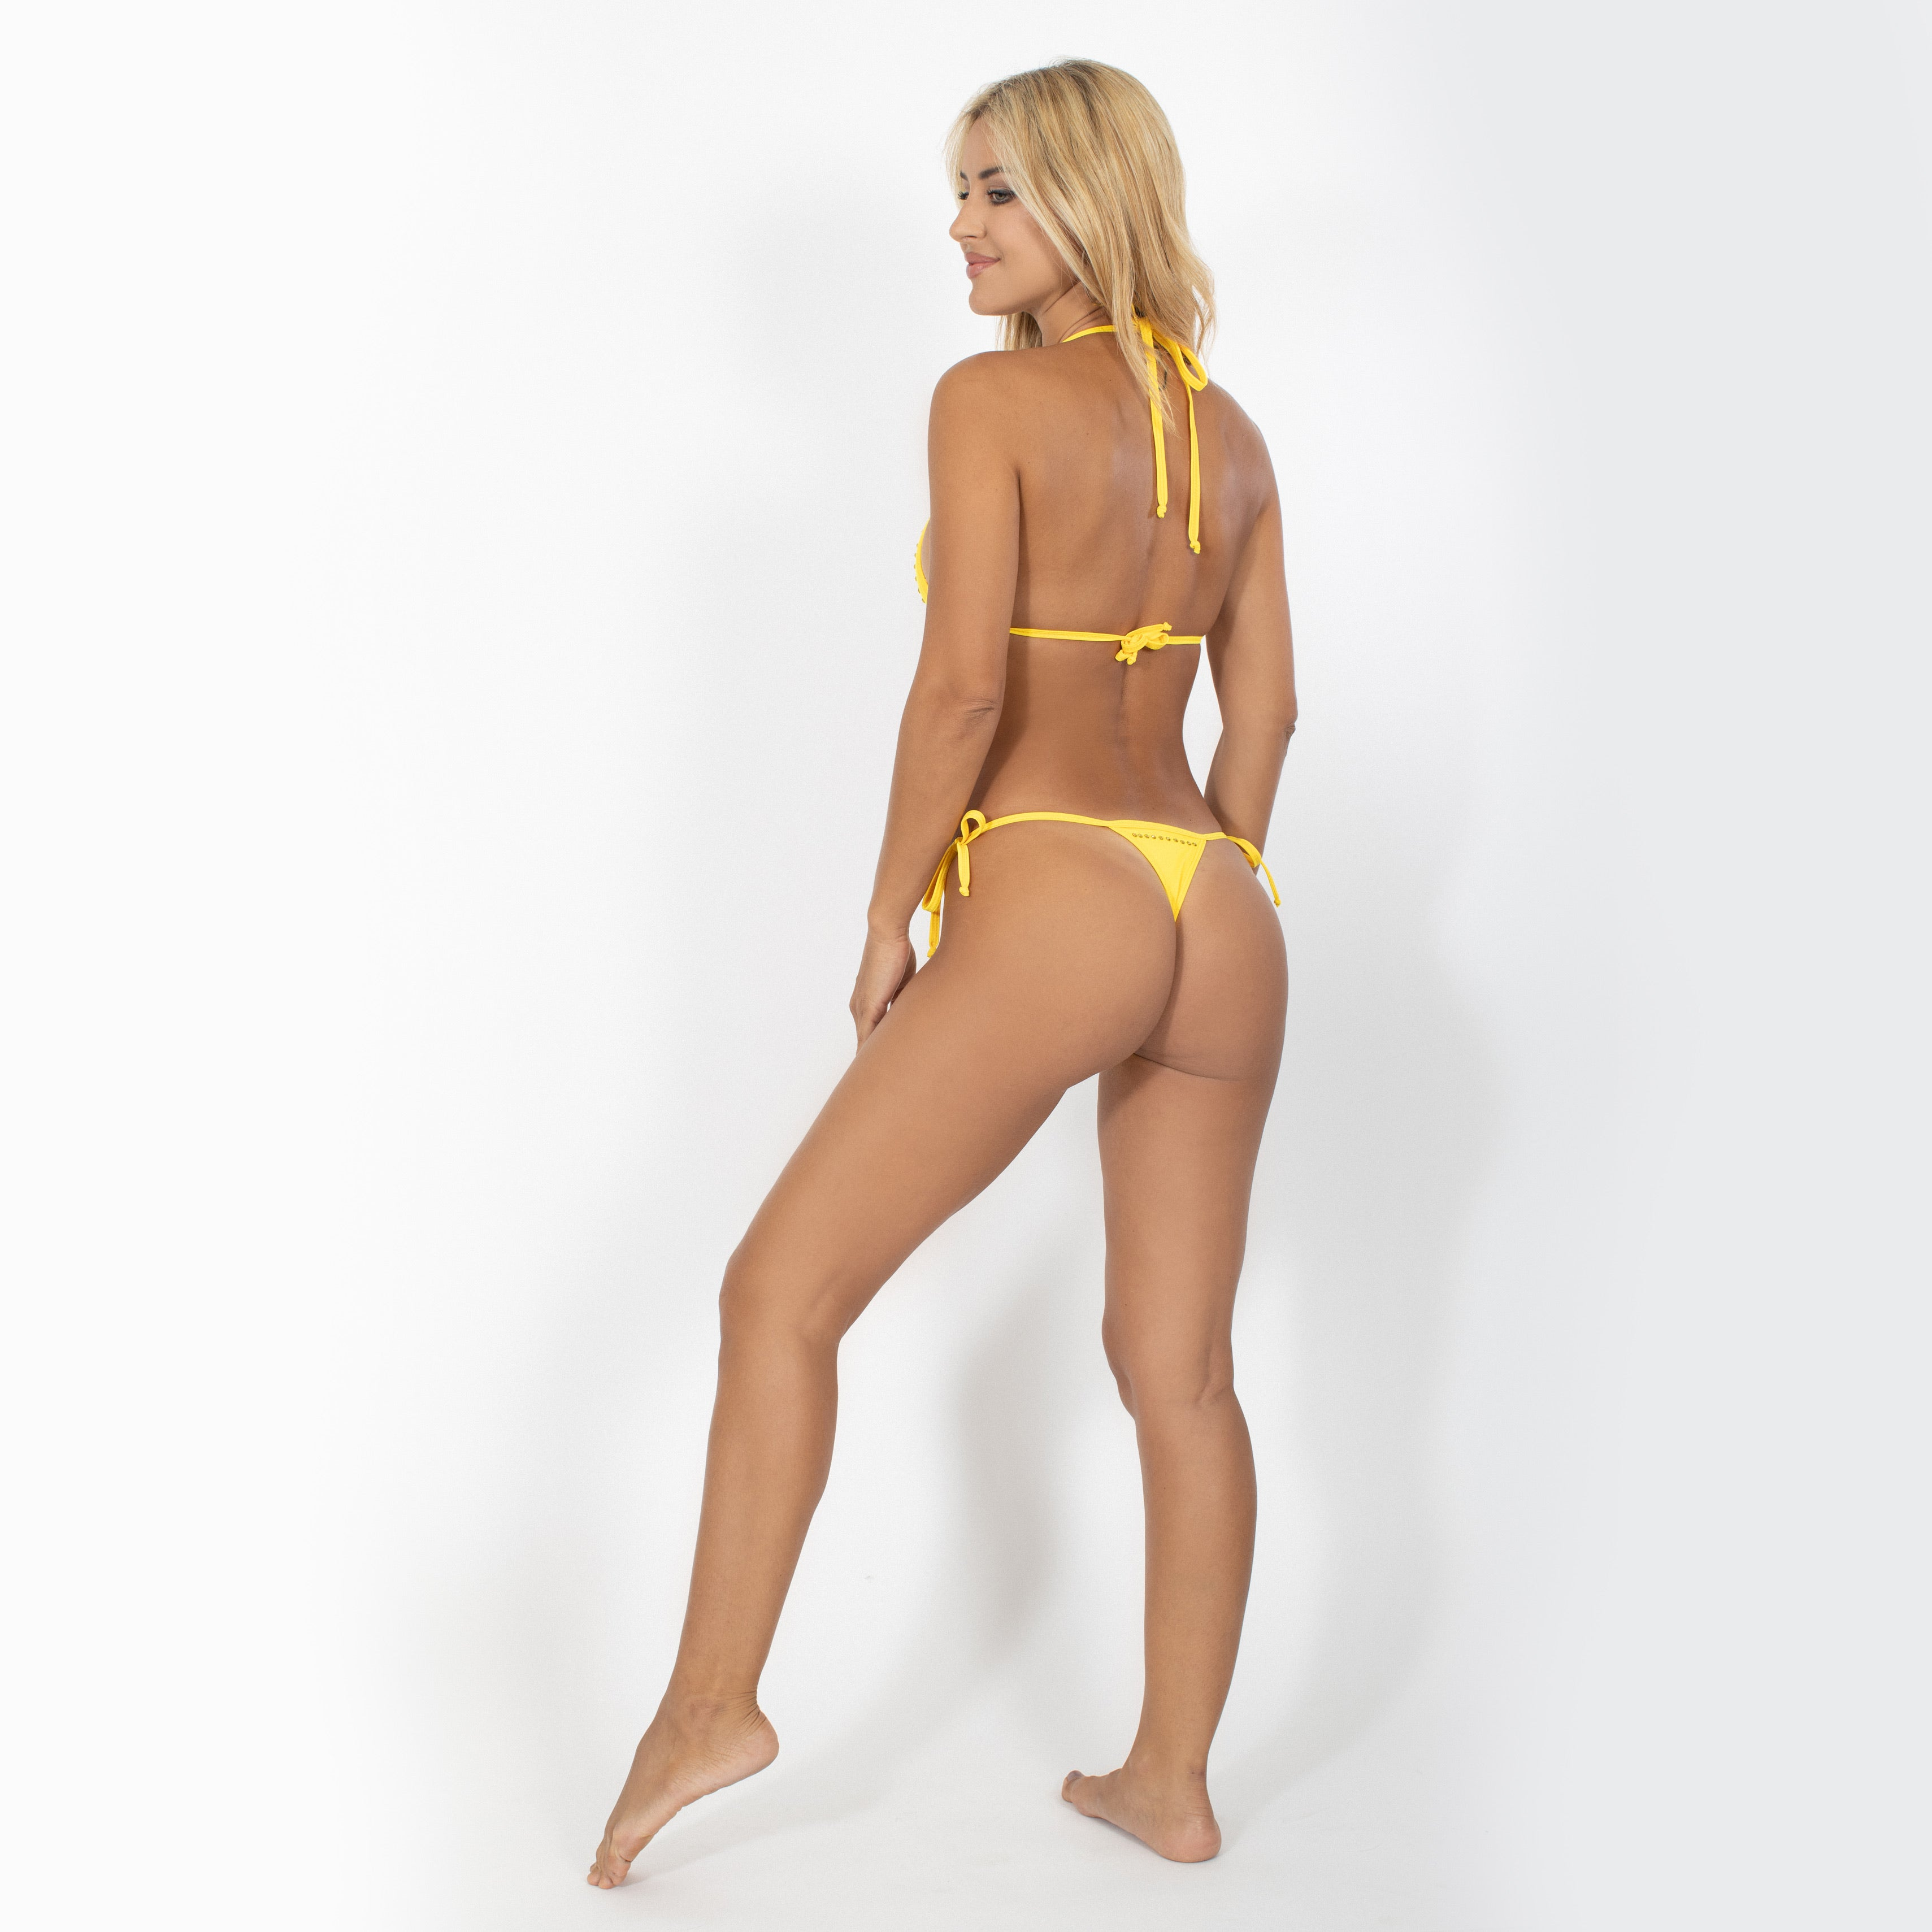 Swimwear Bottom Knotted On The Sides - Claudio Milano Couture